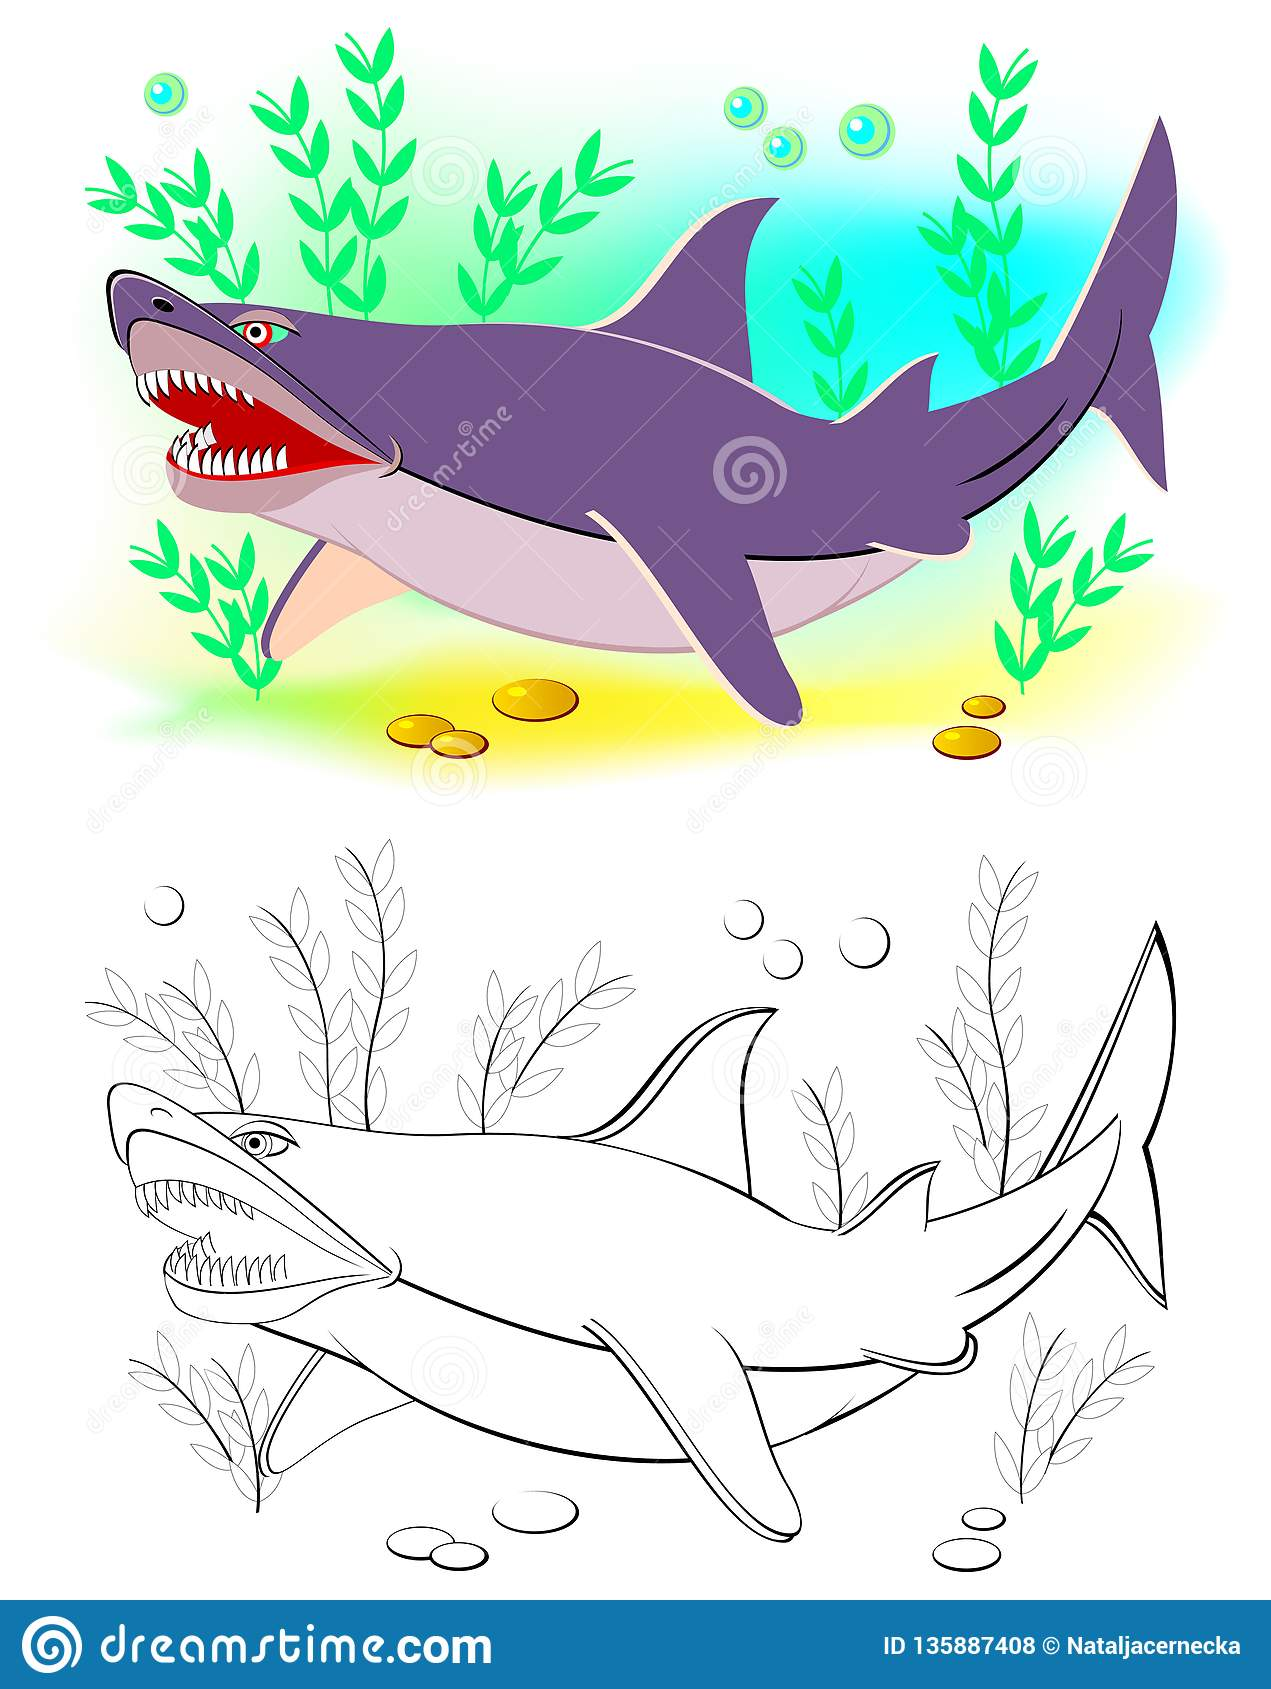 Fantasy Illustration Of Cute Shark Colorful And Black And